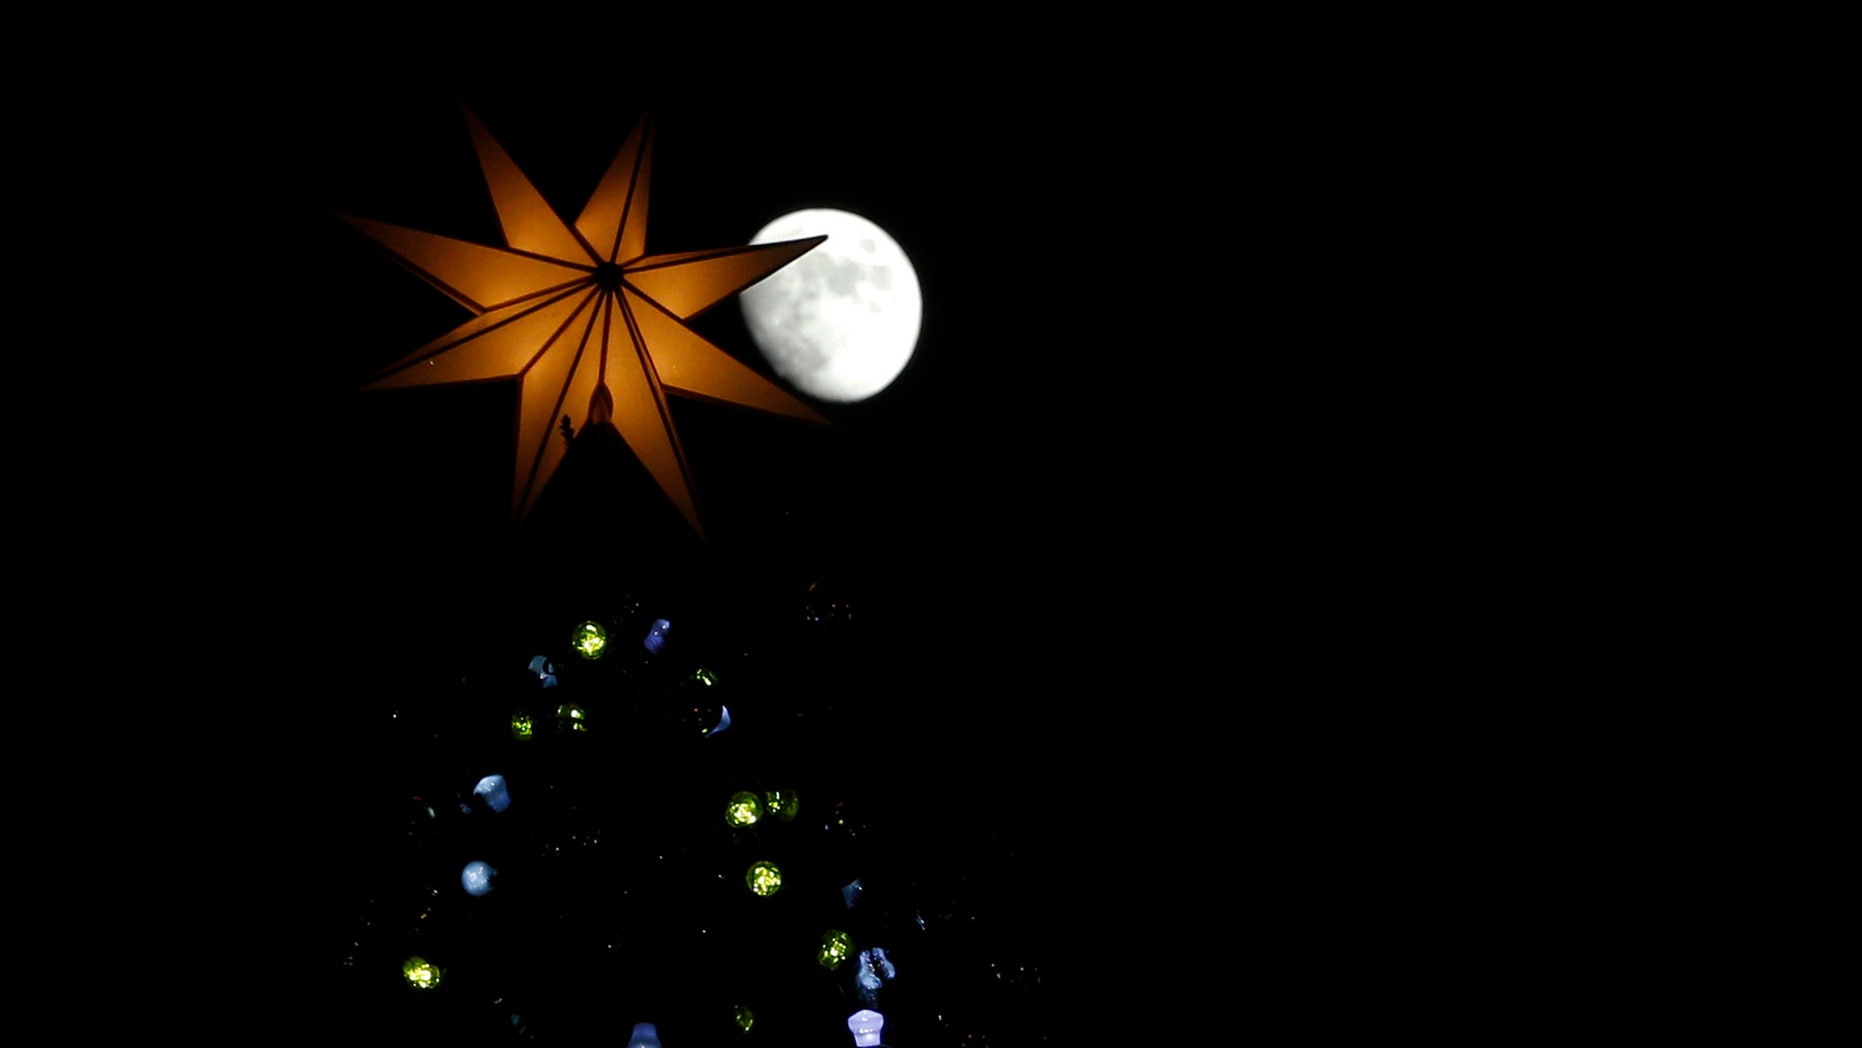 A crescent moon rises above a Christmas tree in St. Peter's Square at the Vatican, Friday, Dec. 13, 2013. The 25-meter (82 feet) tall tree which arrived from Bavaria, Germany was lit Friday evening at the end of ceremony. Big crowds are expected to flock to the square during the holidays to admire the tree. (AP Photo/Andrew Medichini)